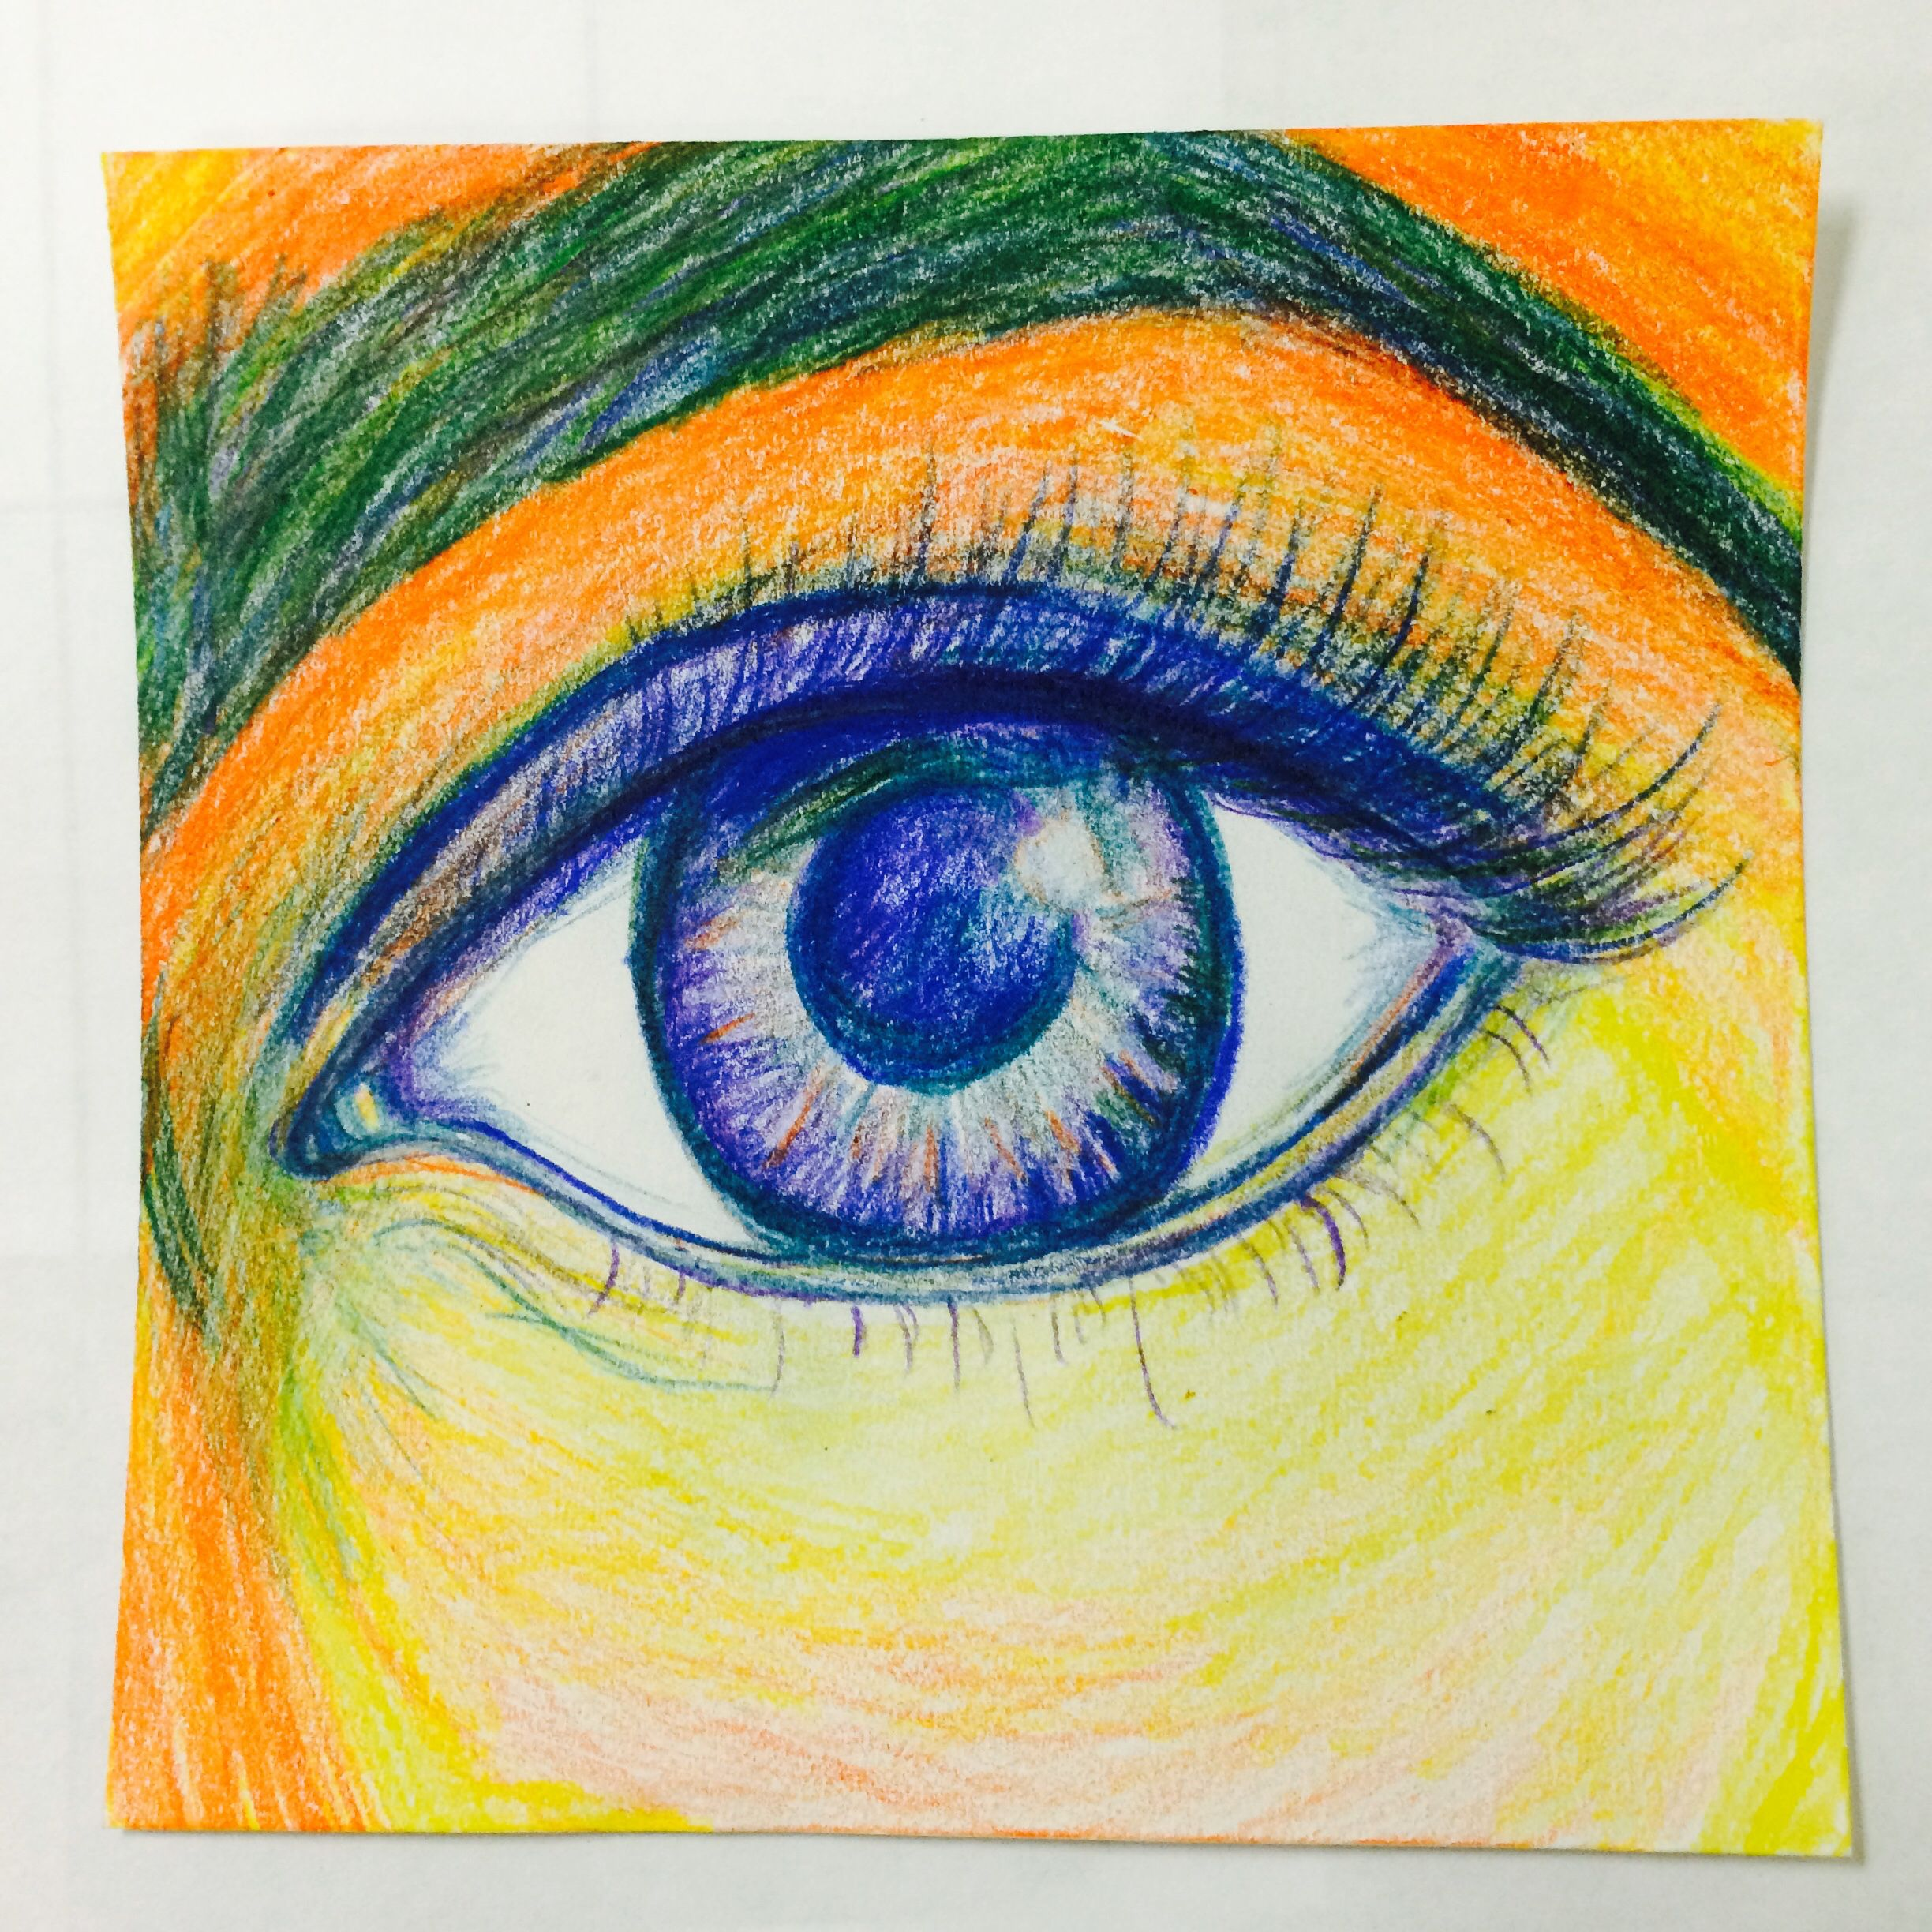 Fauvism Meets Realism Expressive Eye Project 8x8 Ms